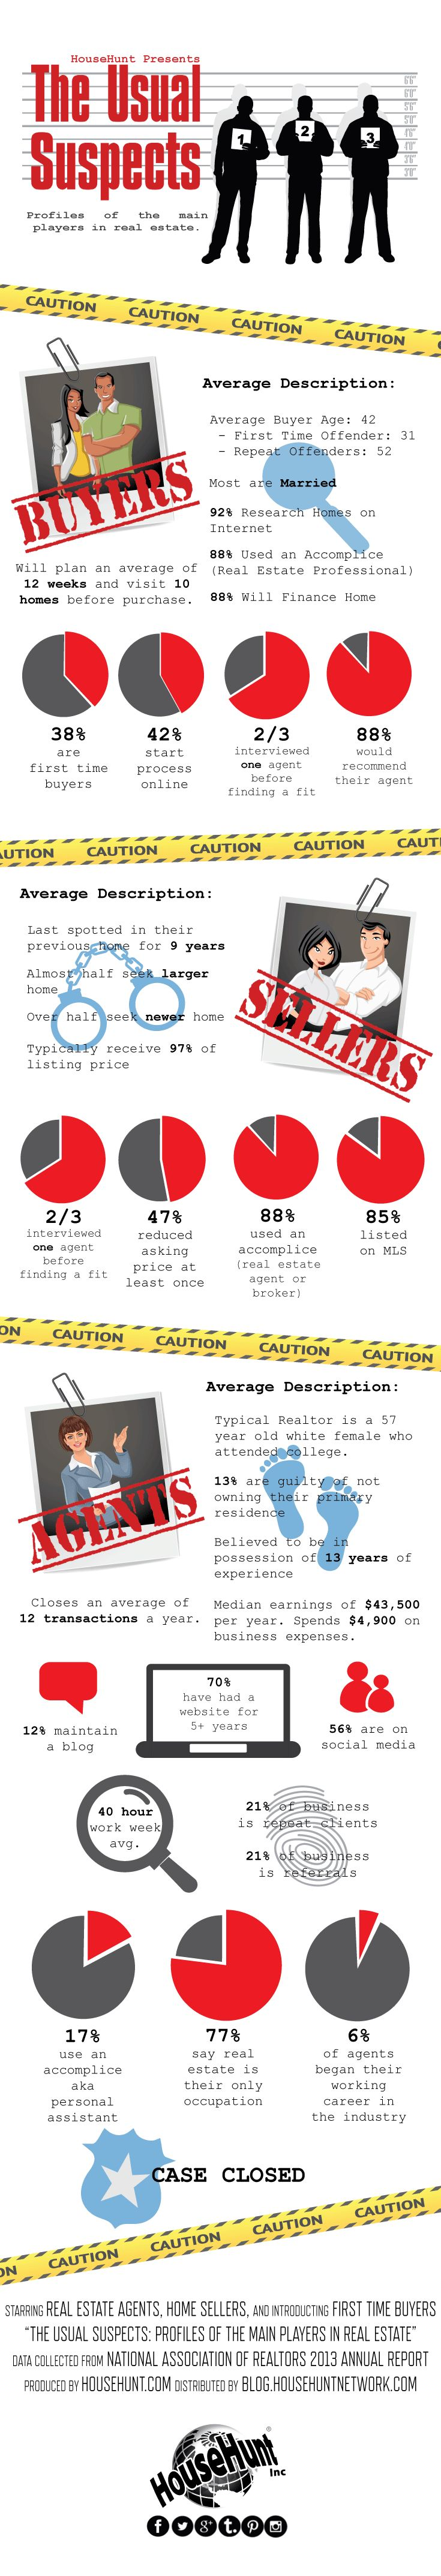 Who's Who in Real Estate #Infographic http://www.blog.househuntnetwork.com/whos-real-estate-infographic/